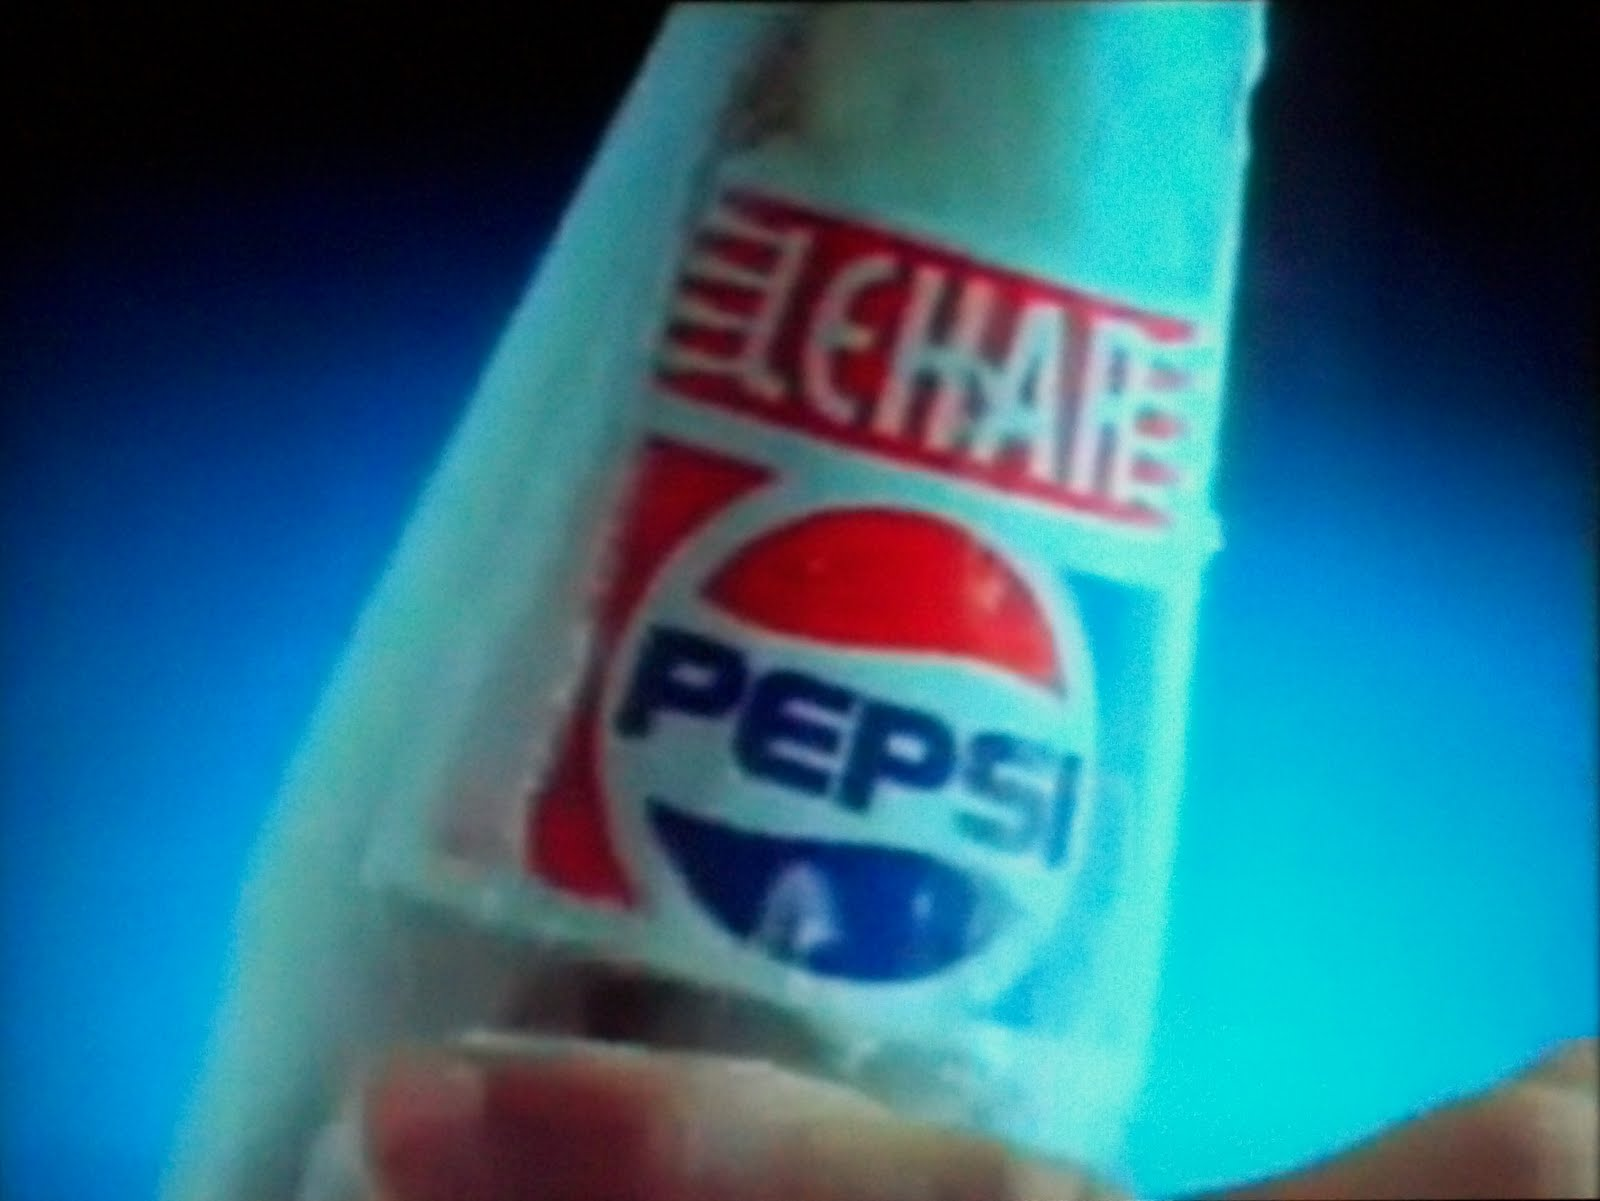 history of pepsi in india